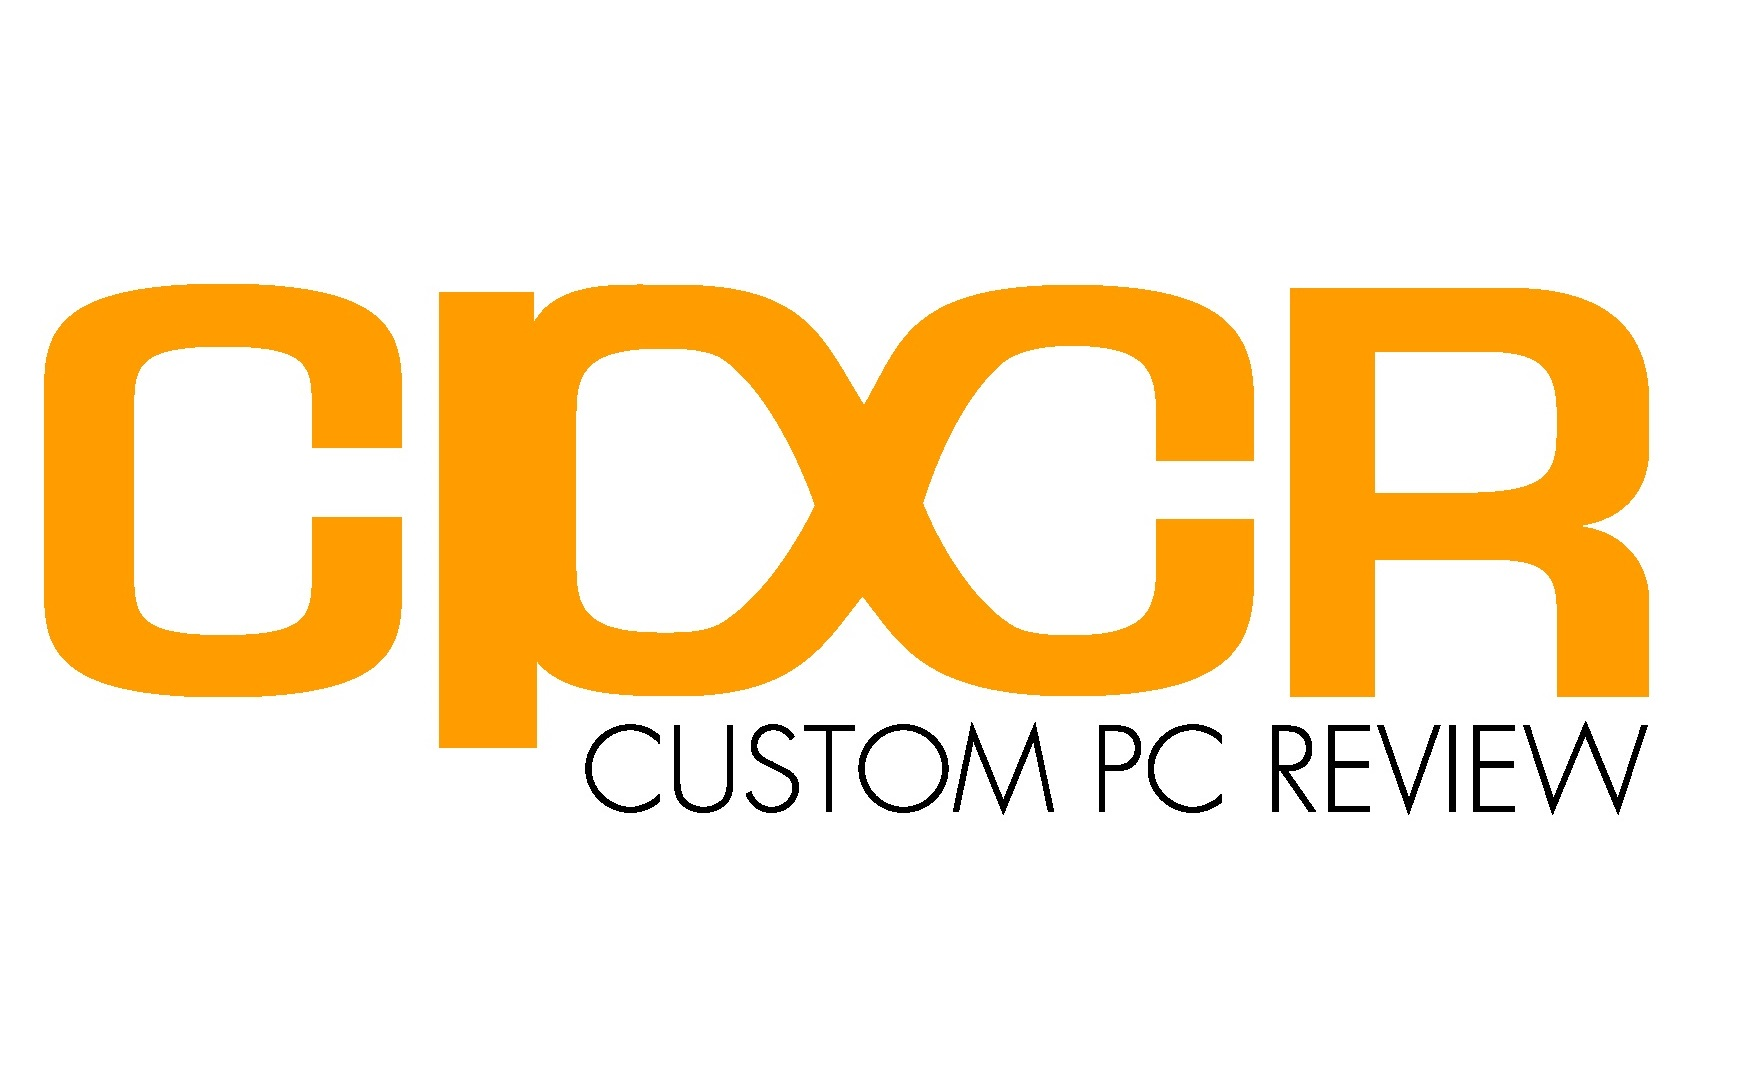 cpcr-logo-v2-transparent-white